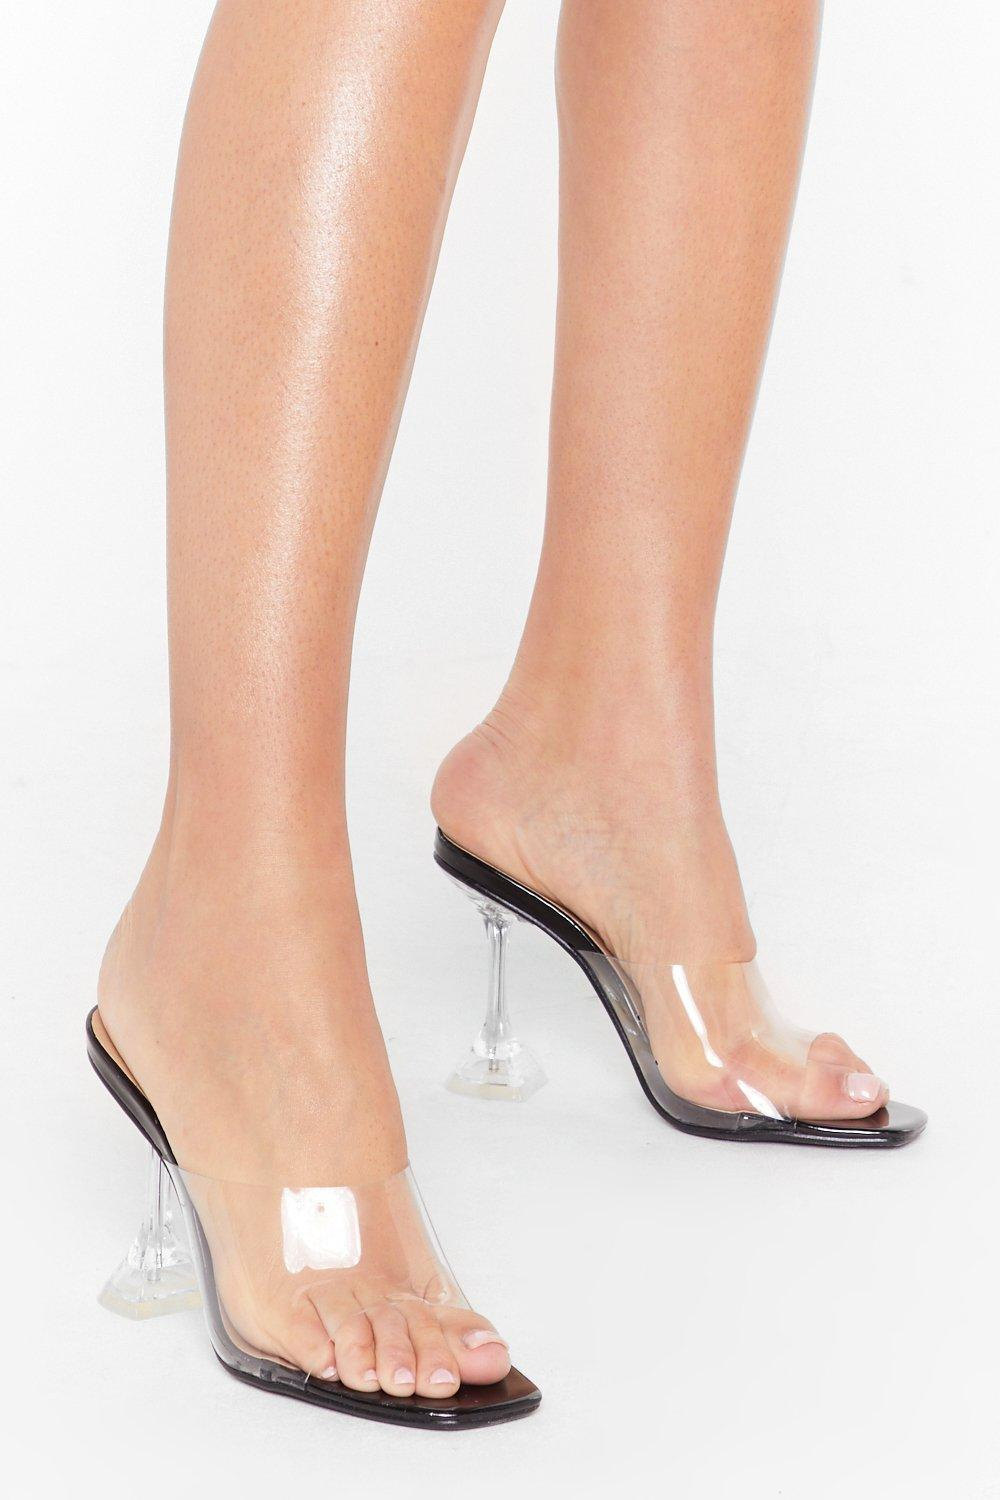 Image of Clear Off Faux Leather Stiletto Mules